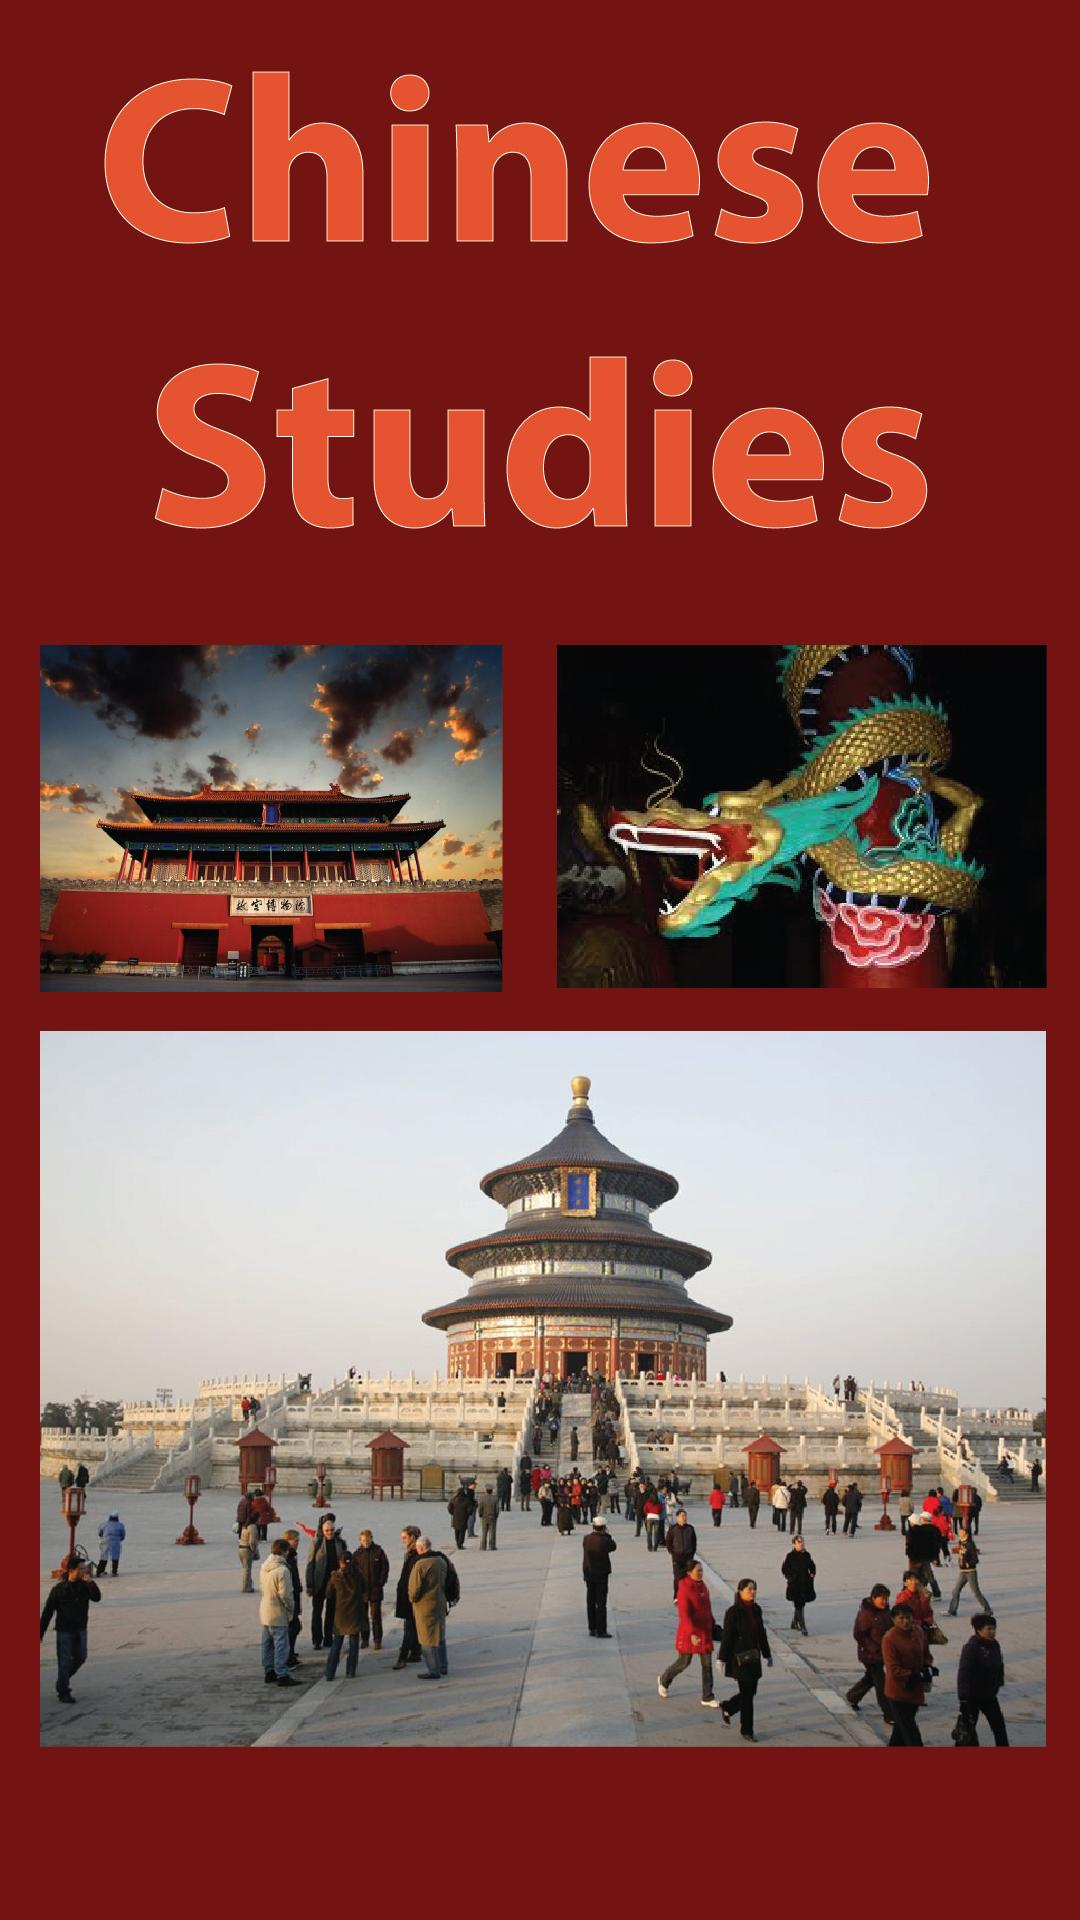 Chinese Studies Main Image